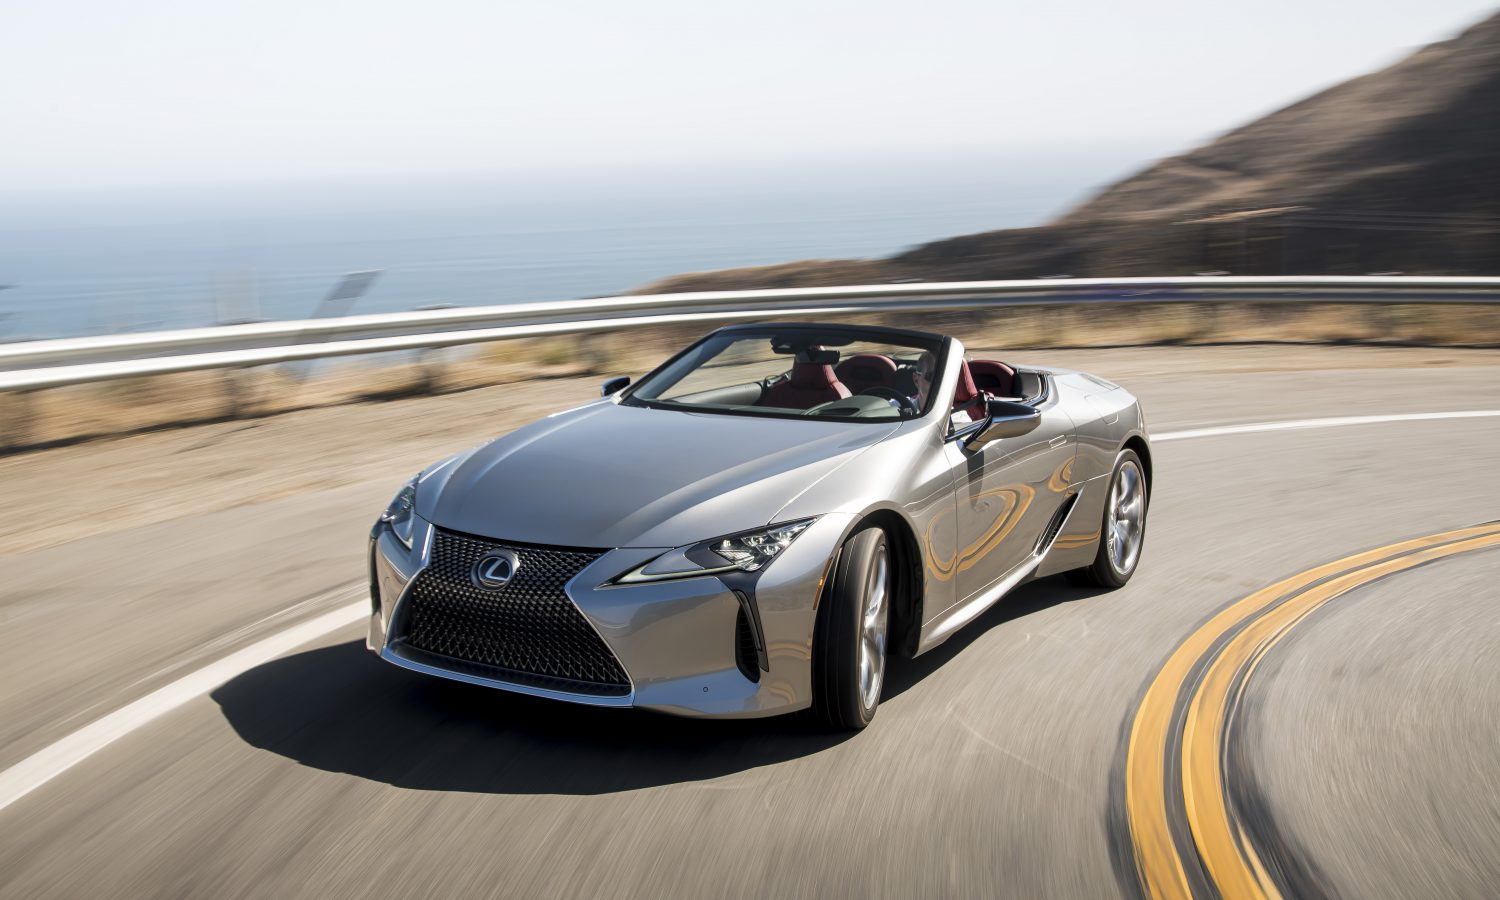 2021 Lexus LC 500 Convertible Opens Possibilities for Flagship Performance